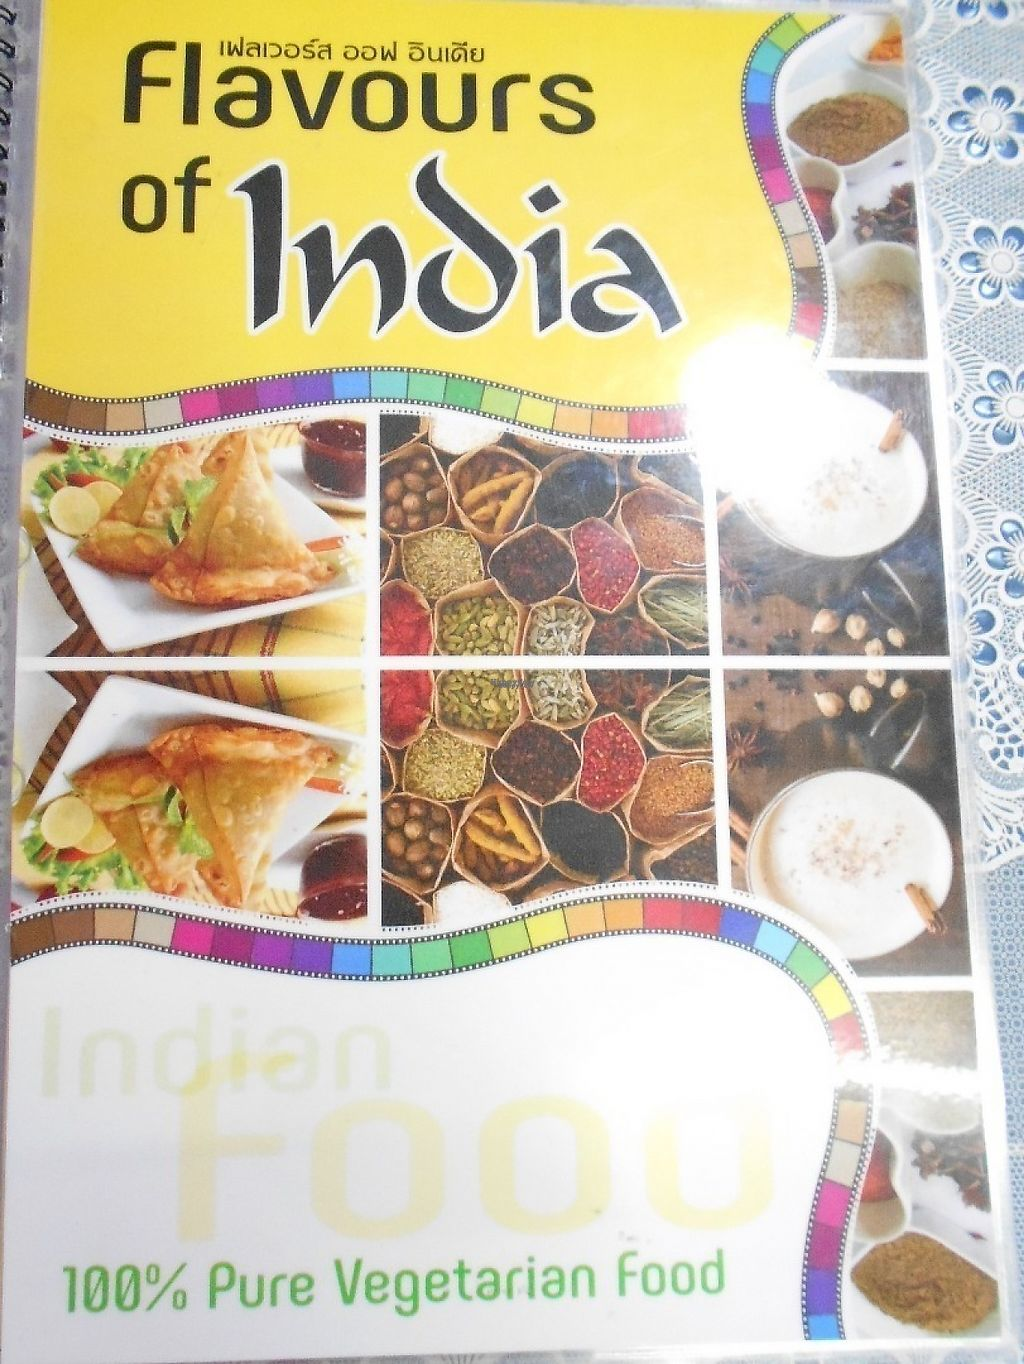 """Photo of Flavours of India  by <a href=""""/members/profile/Kelly%20Kelly"""">Kelly Kelly</a> <br/>Flavors Of India Vegetarian  <br/> April 24, 2017  - <a href='/contact/abuse/image/90263/252093'>Report</a>"""